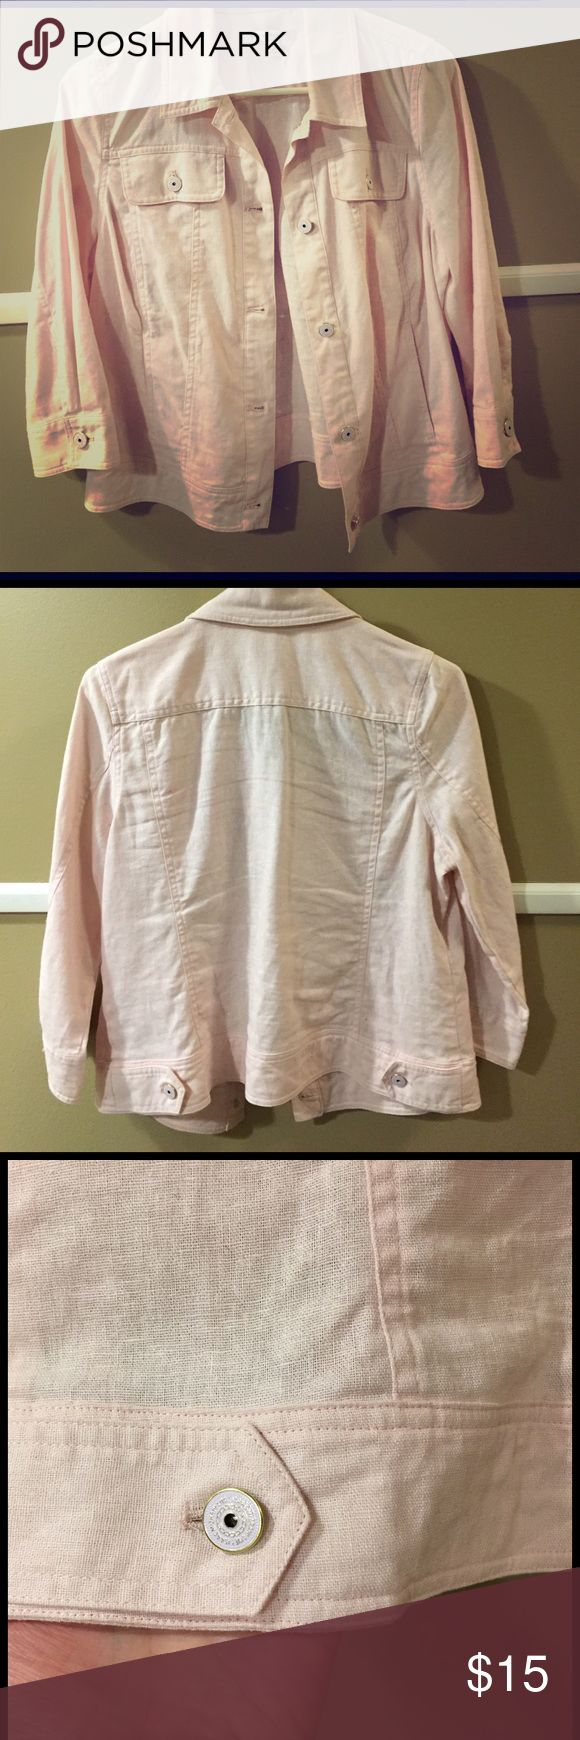 Light pink denim jacket Thin jacket, 3/4 length sleeves. Light pink color with pretty buttons. Two front pockets with buttons along with side pockets Isaac Mizrah Live Jackets & Coats Jean Jackets